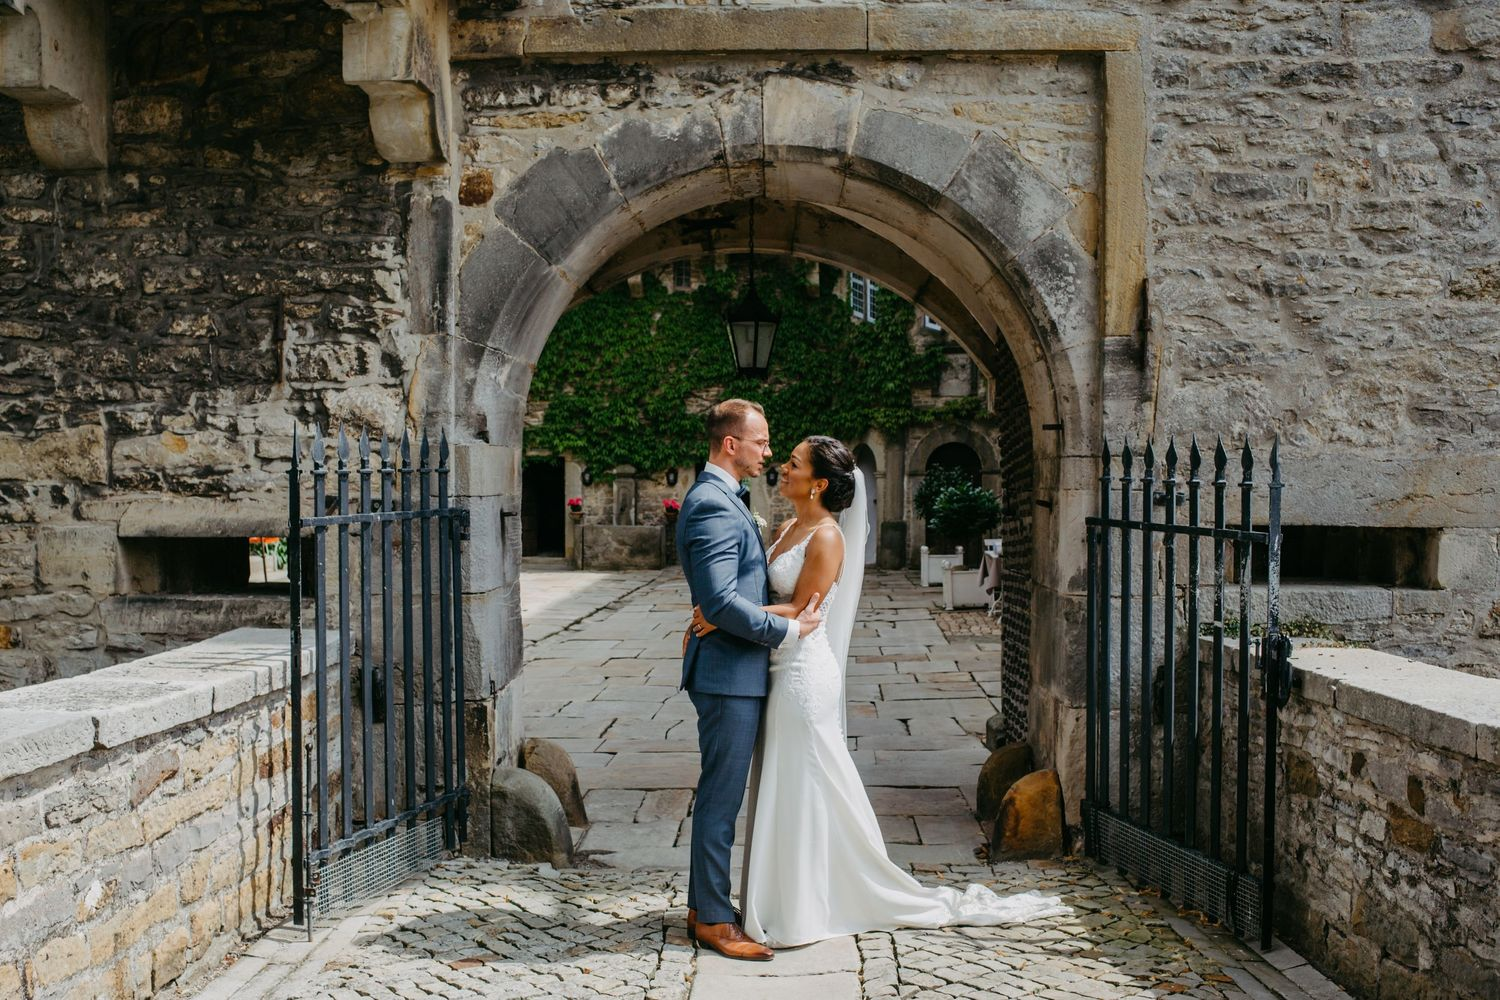 Hochzeitsfotograf Hannover / Germany Wedding Photographer